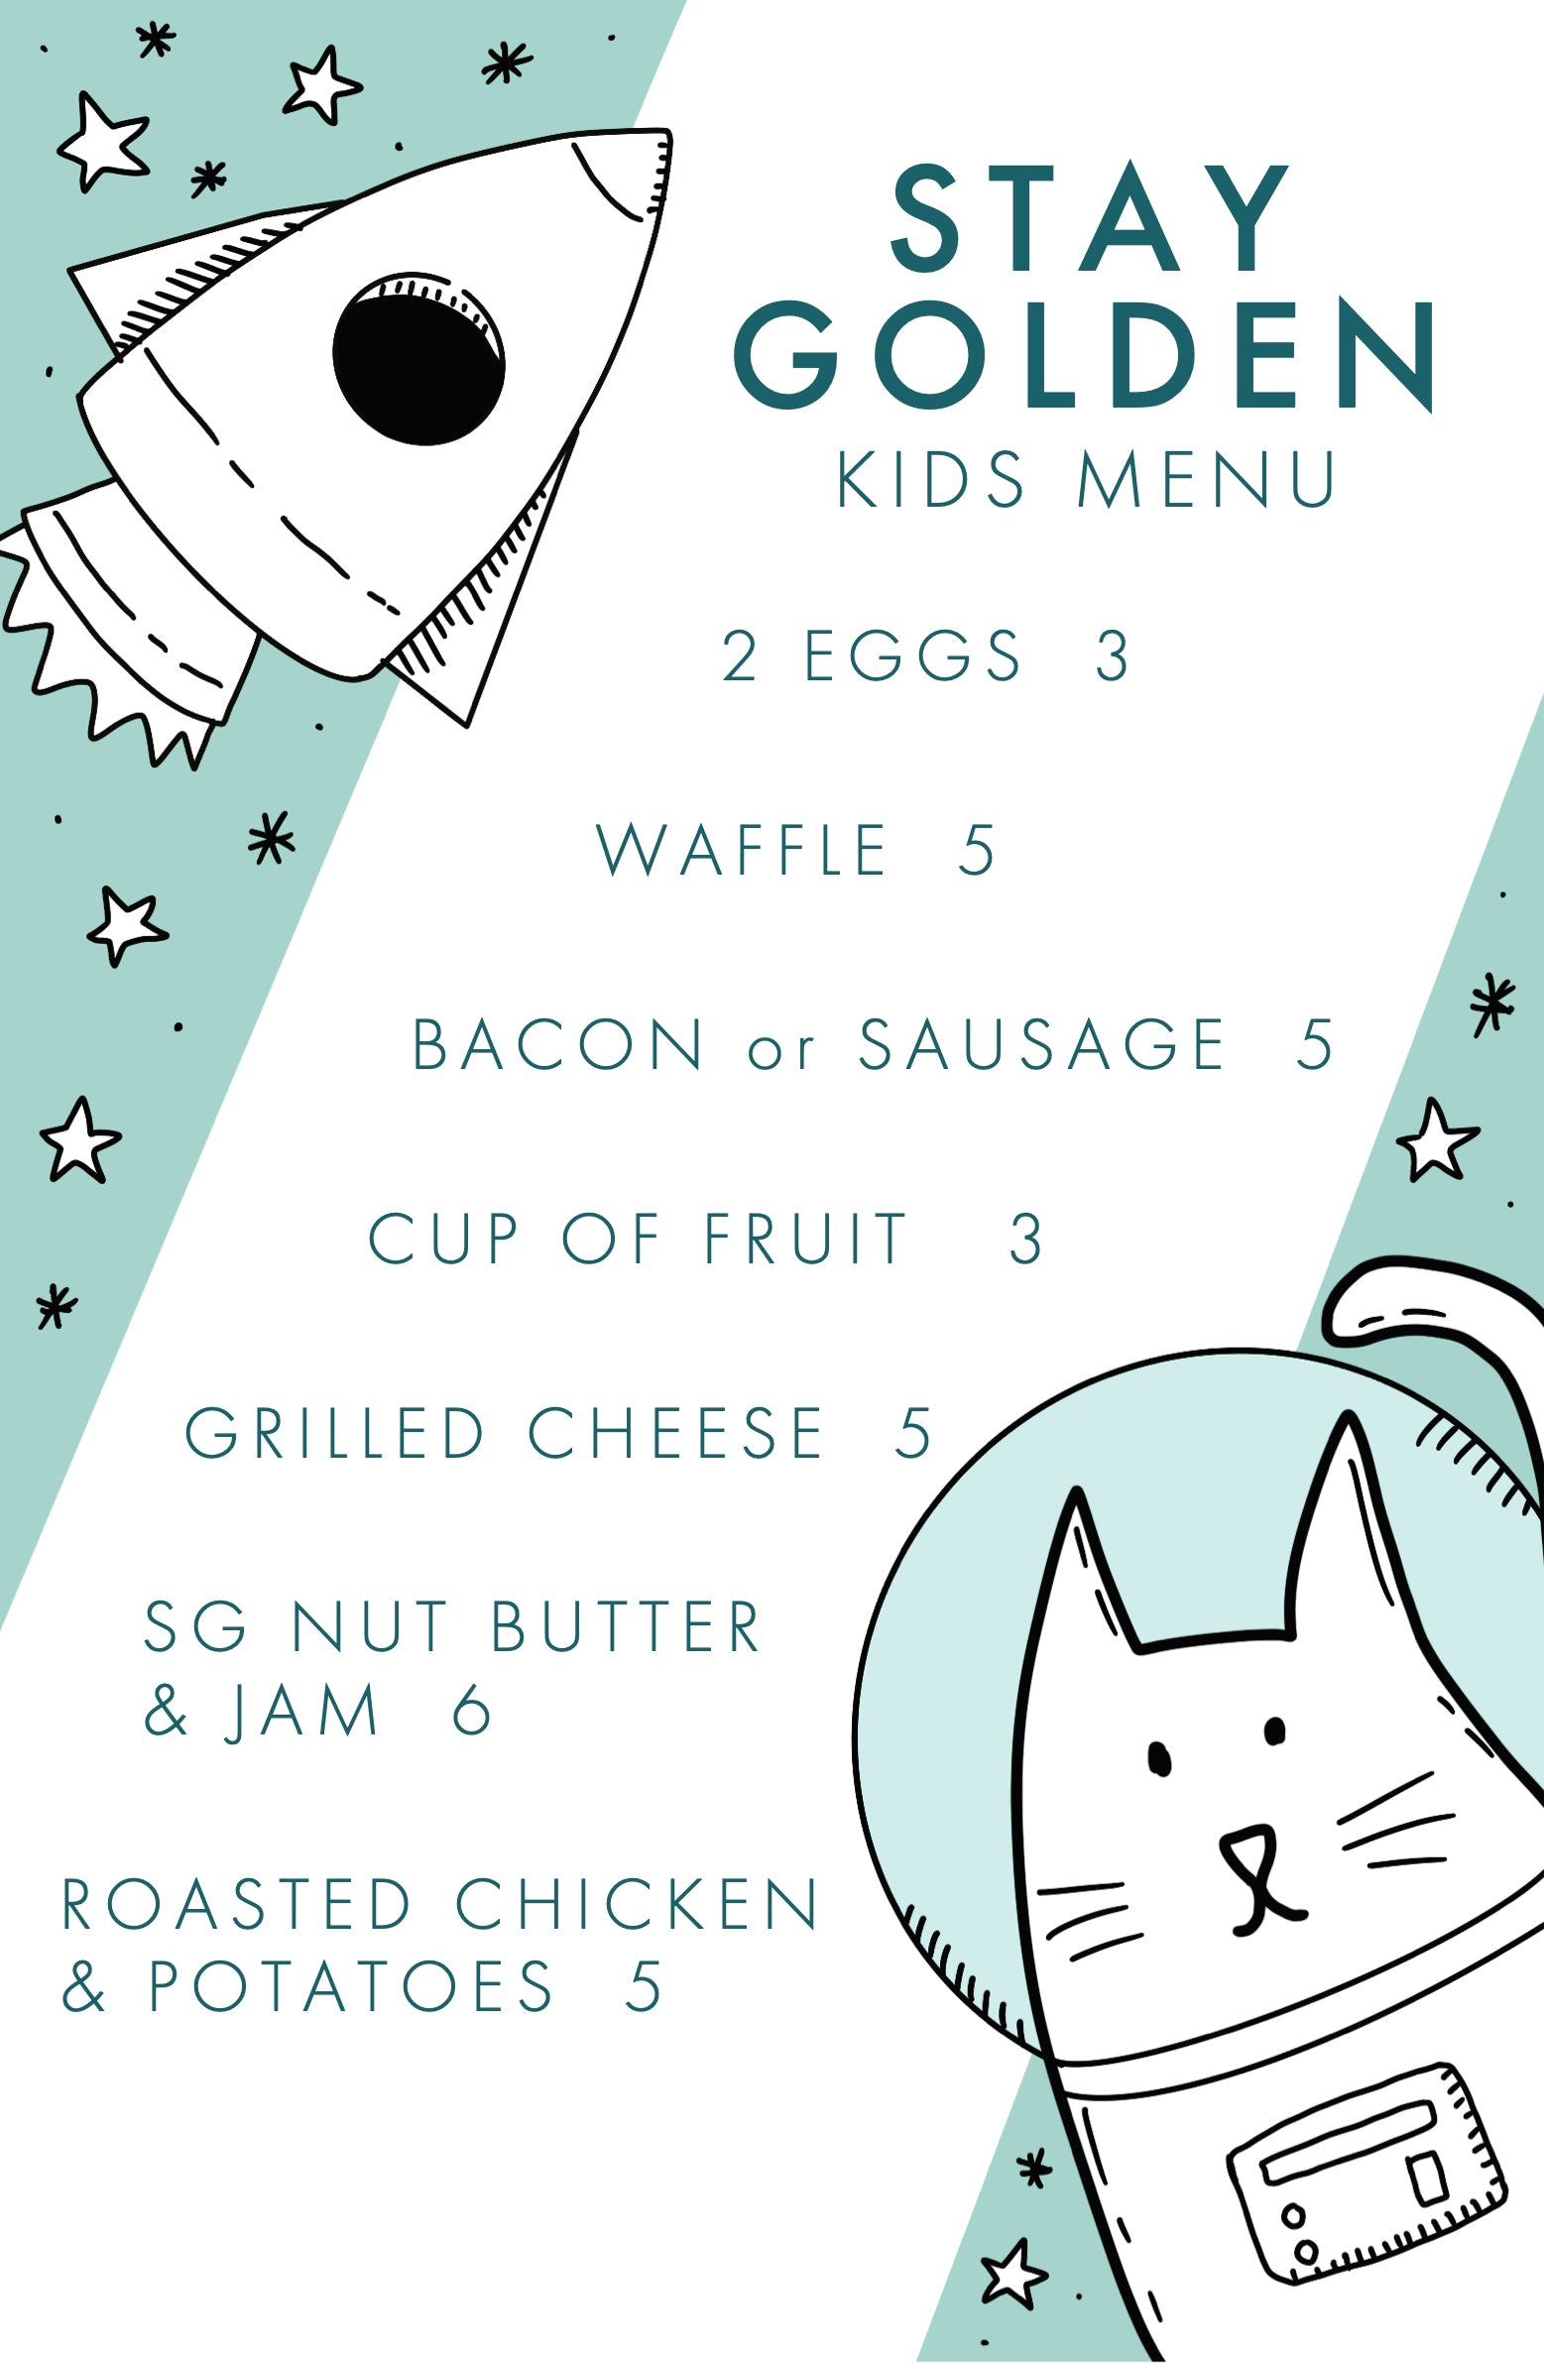 Stay Golden Kids Menu